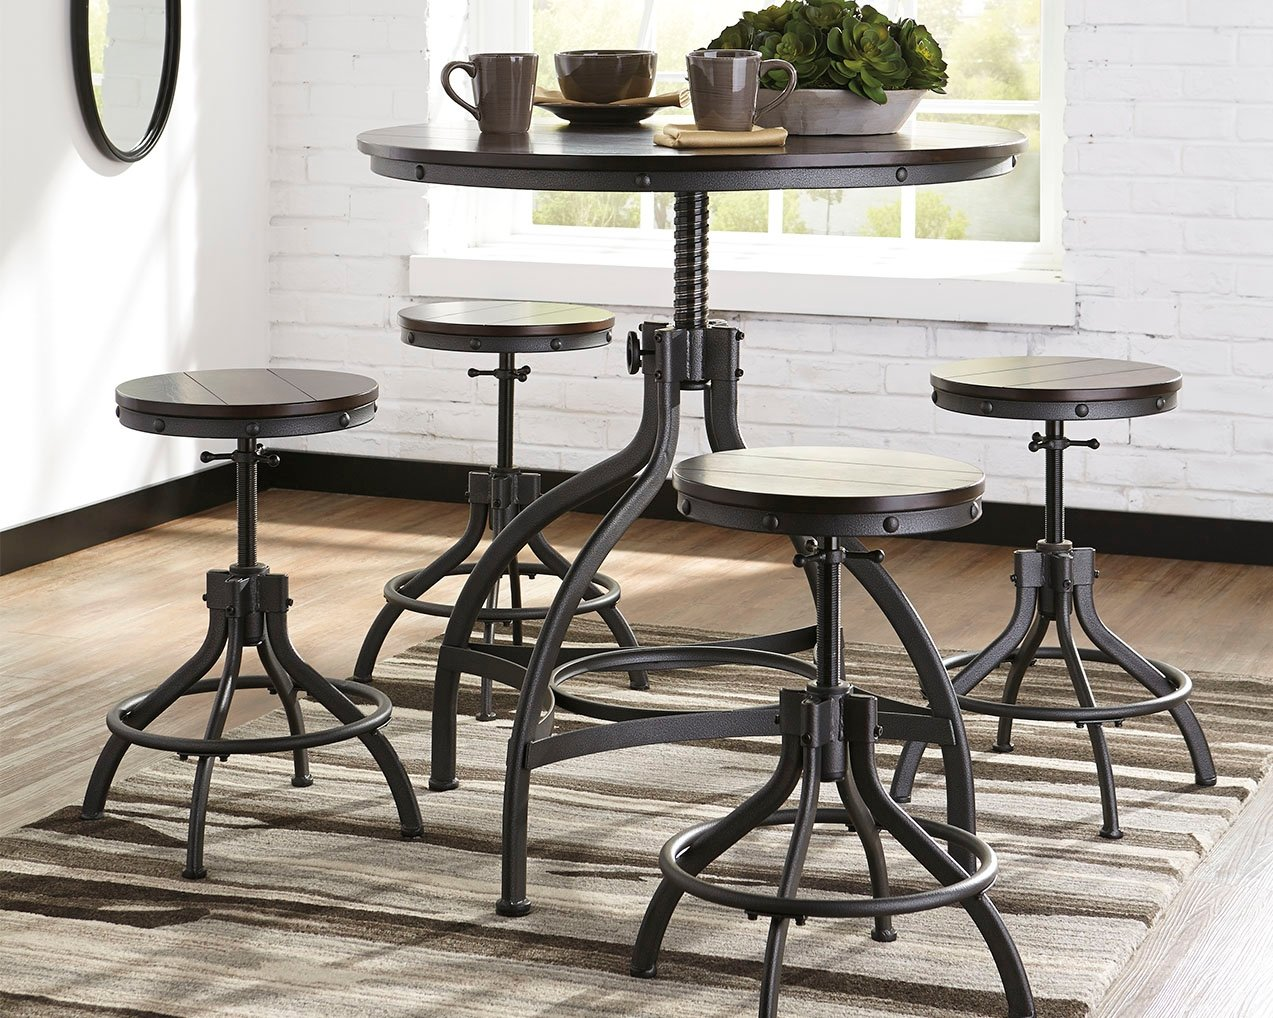 Ashley Odium Collection D284-223 5-Piece Bar Table Set with Adjustable Height Table and 4 Adjustable Height Stools in